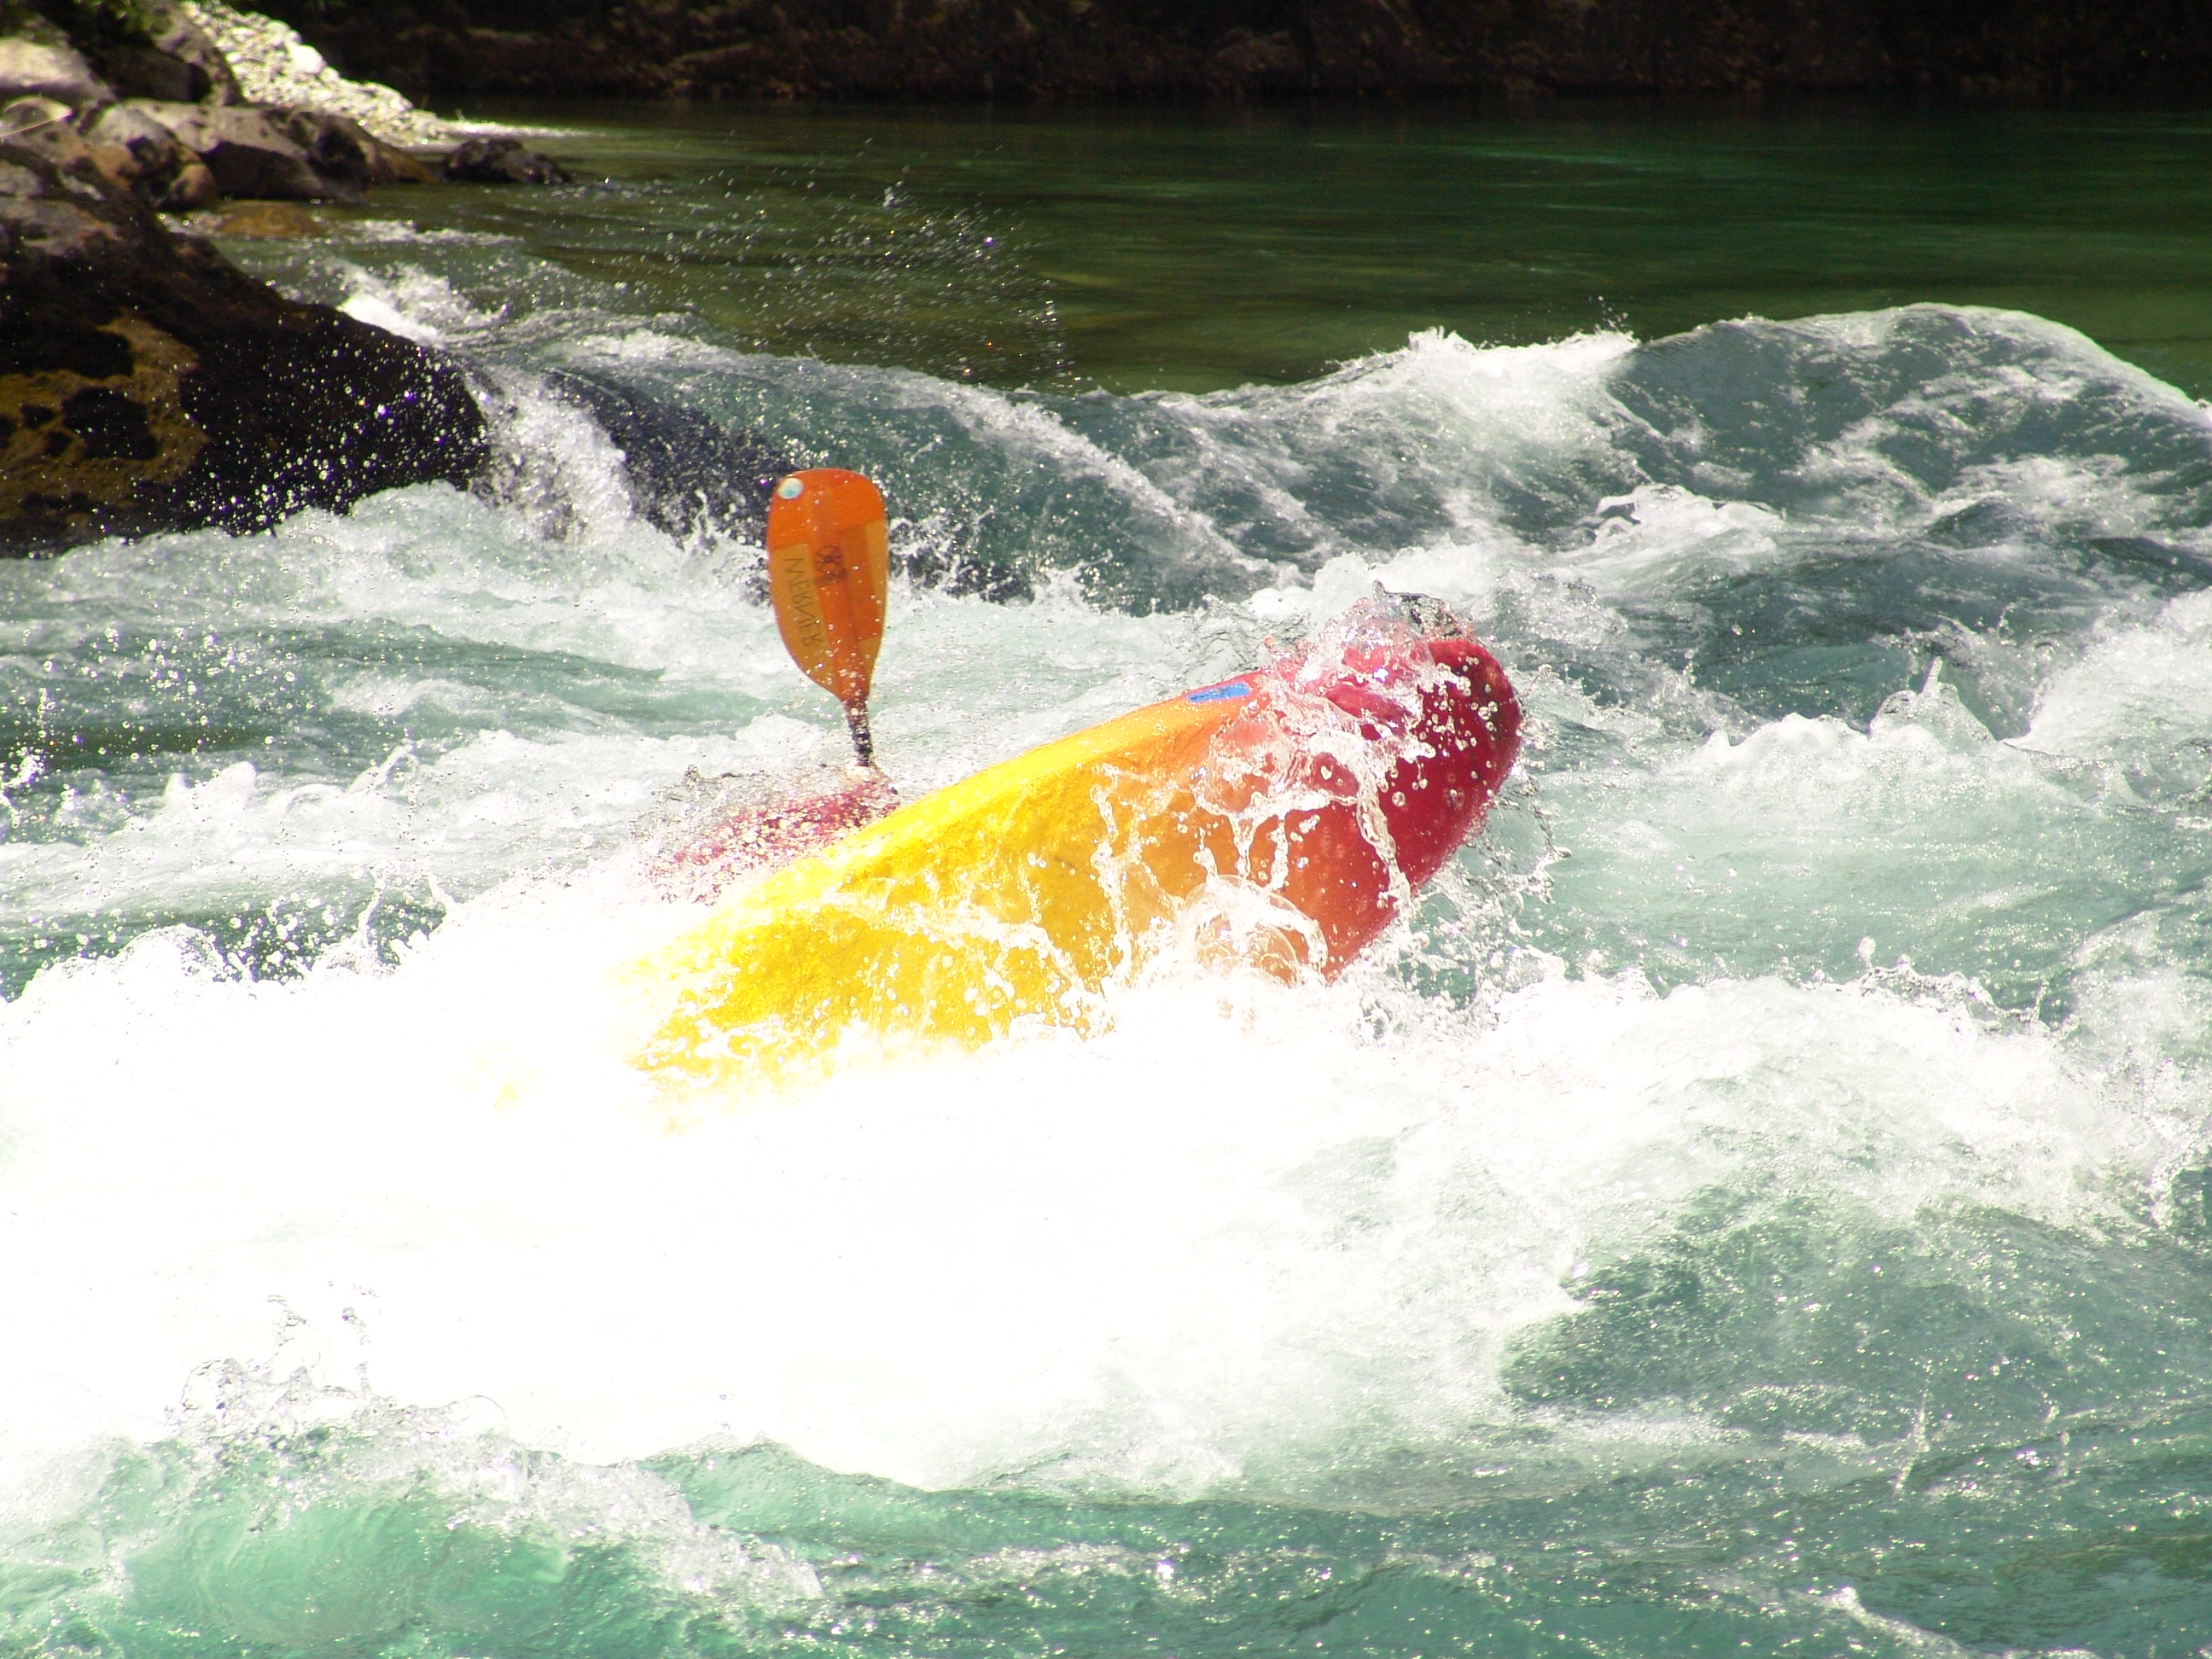 Whitewater kayaking - Wikipedia